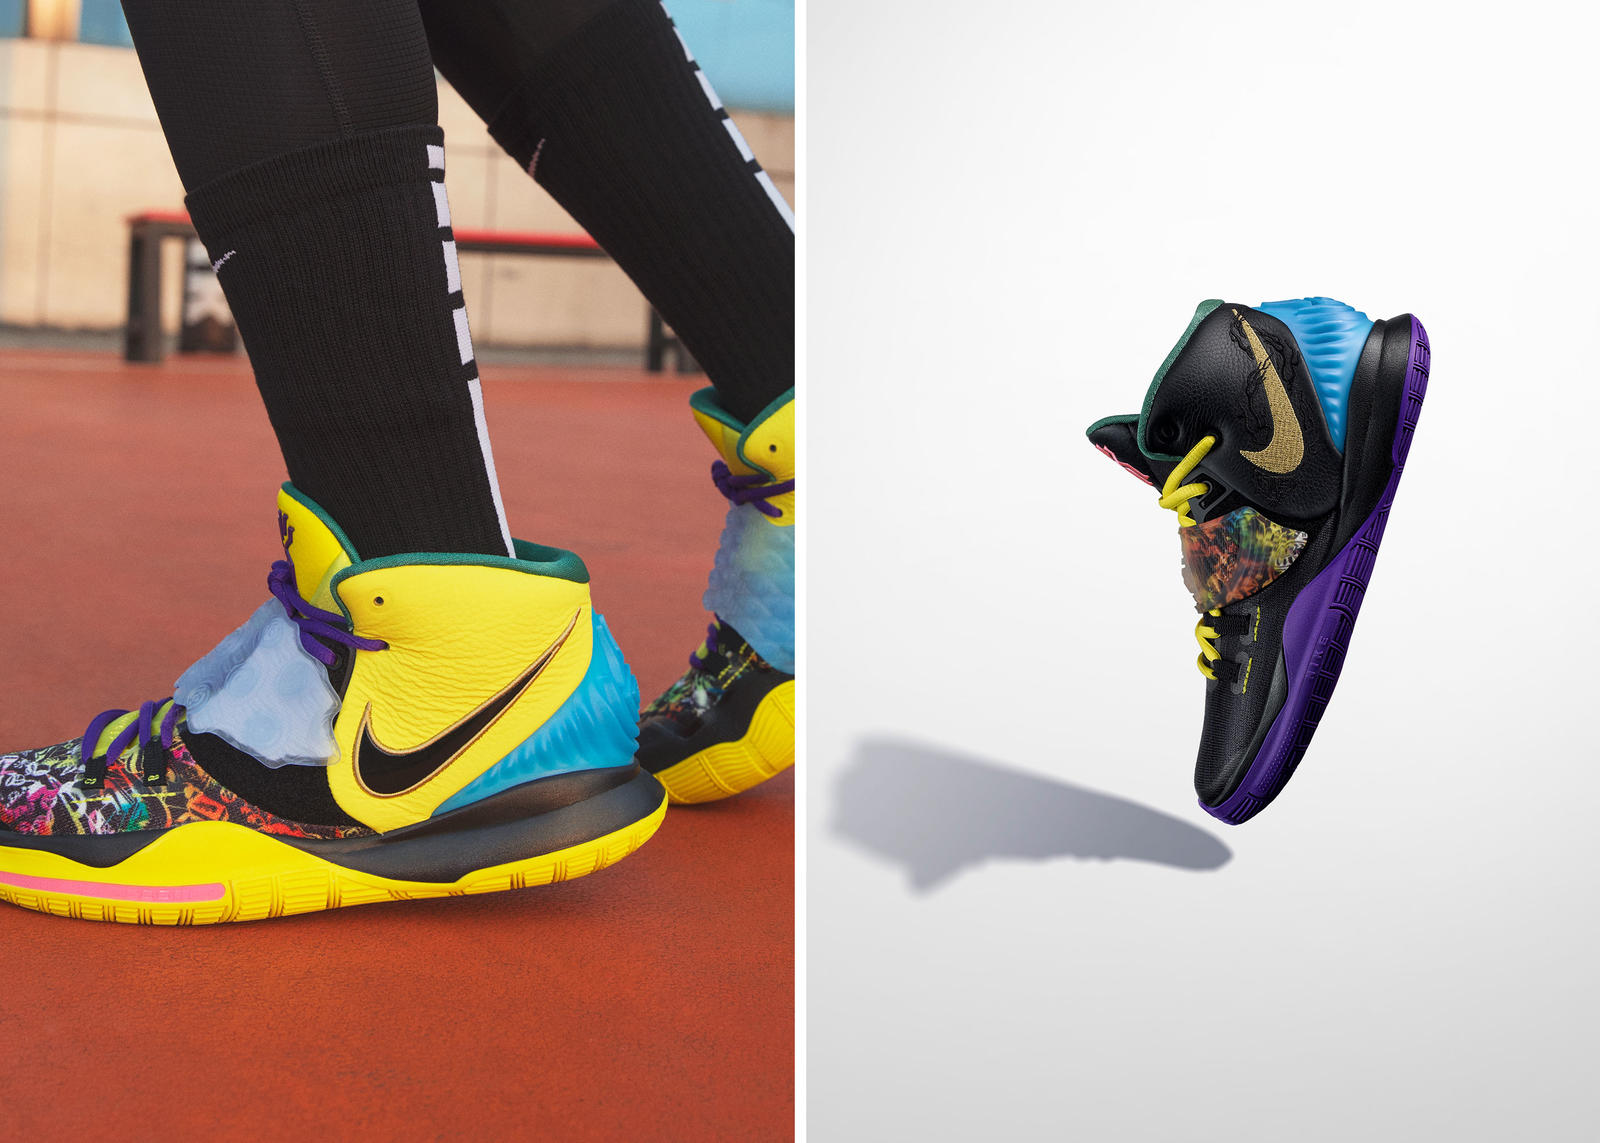 Nike Chinese New Year 2020 Year of the Rat Footwear and Apparel Collection Official Images 6